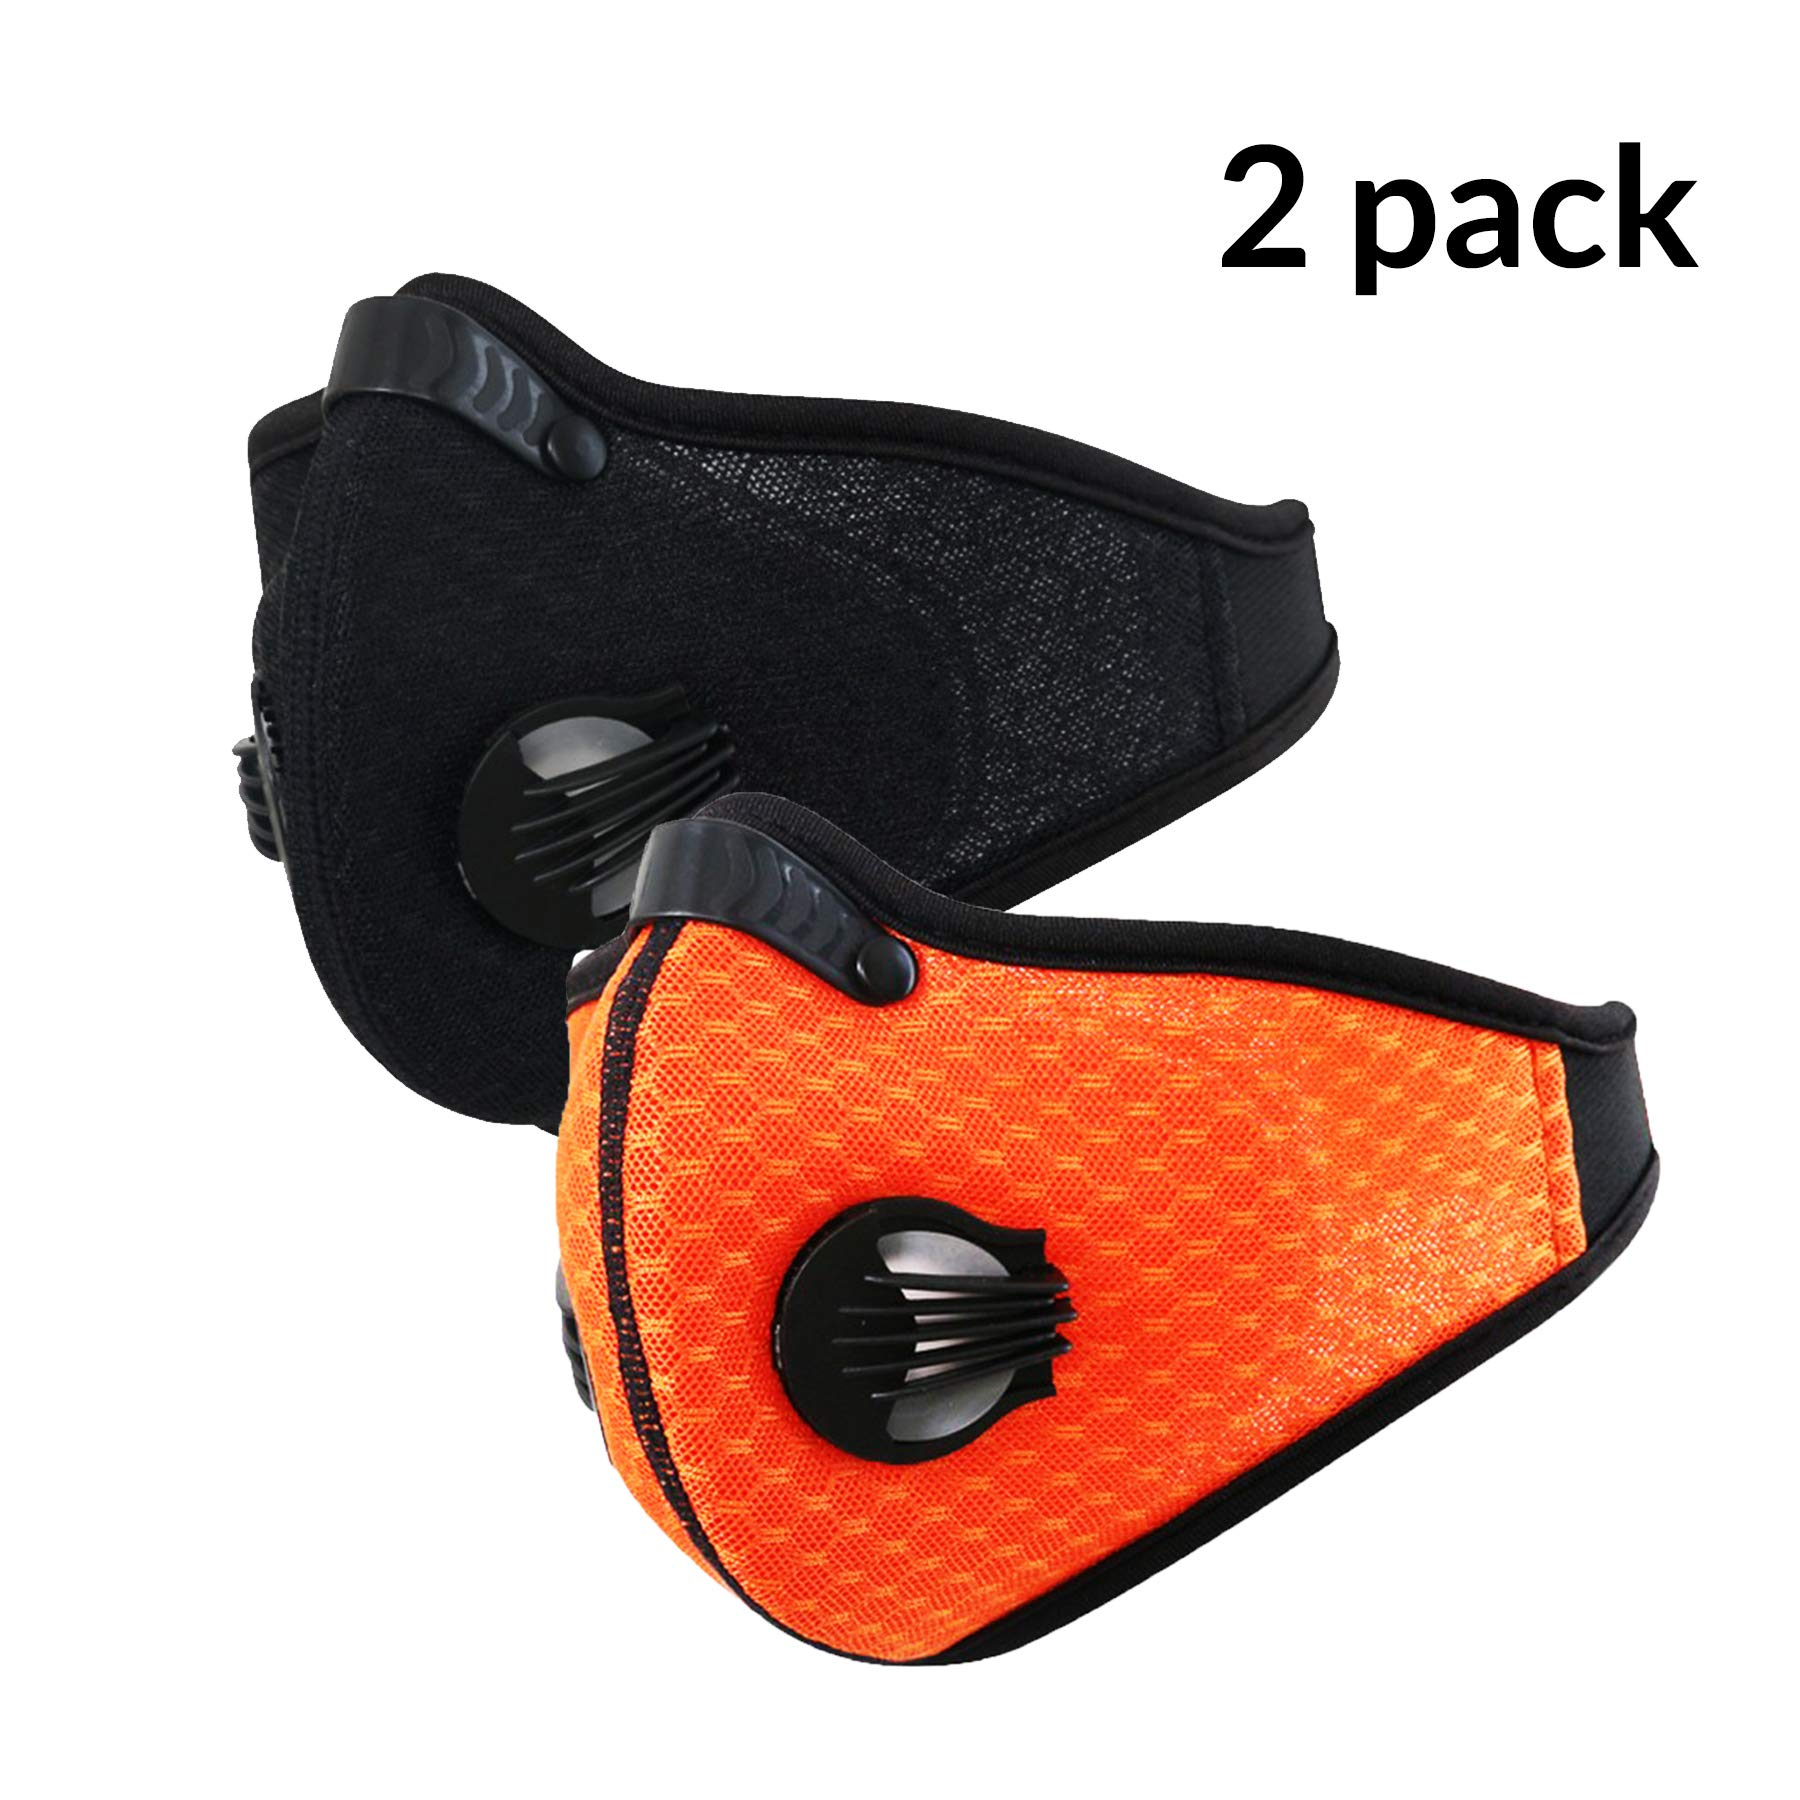 N95 Dust Mask Respirator, Dustproof Face Mask, 2 Pack Activate Carbon Anti Dust Pollution Pollen Allergy Filter Mouth Mask, Perfect for Woodworking Mowing Saw Dust Outdoor Work,Black Orange by dilib